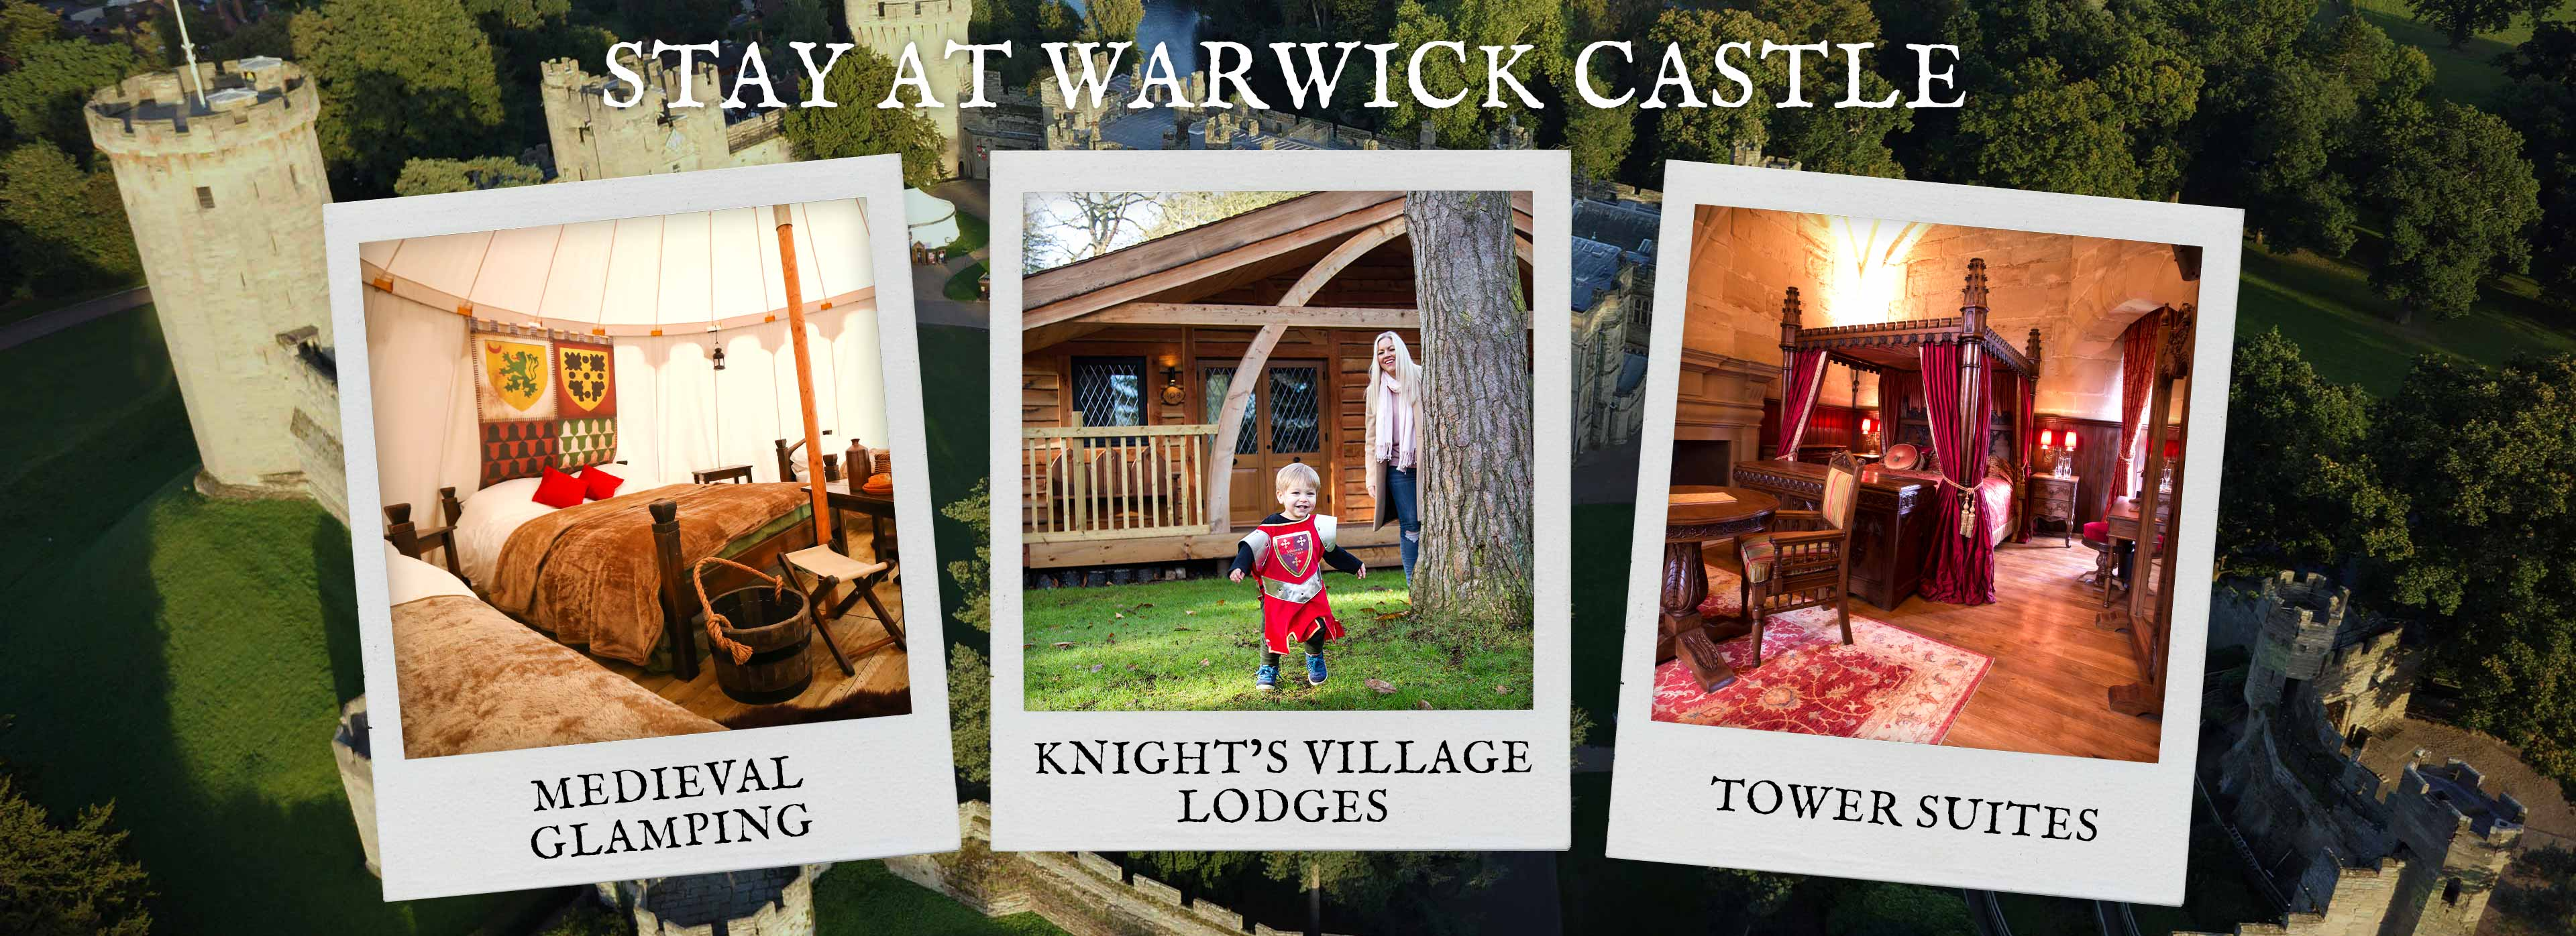 Bed and Breakfast stay at Warwick Castle